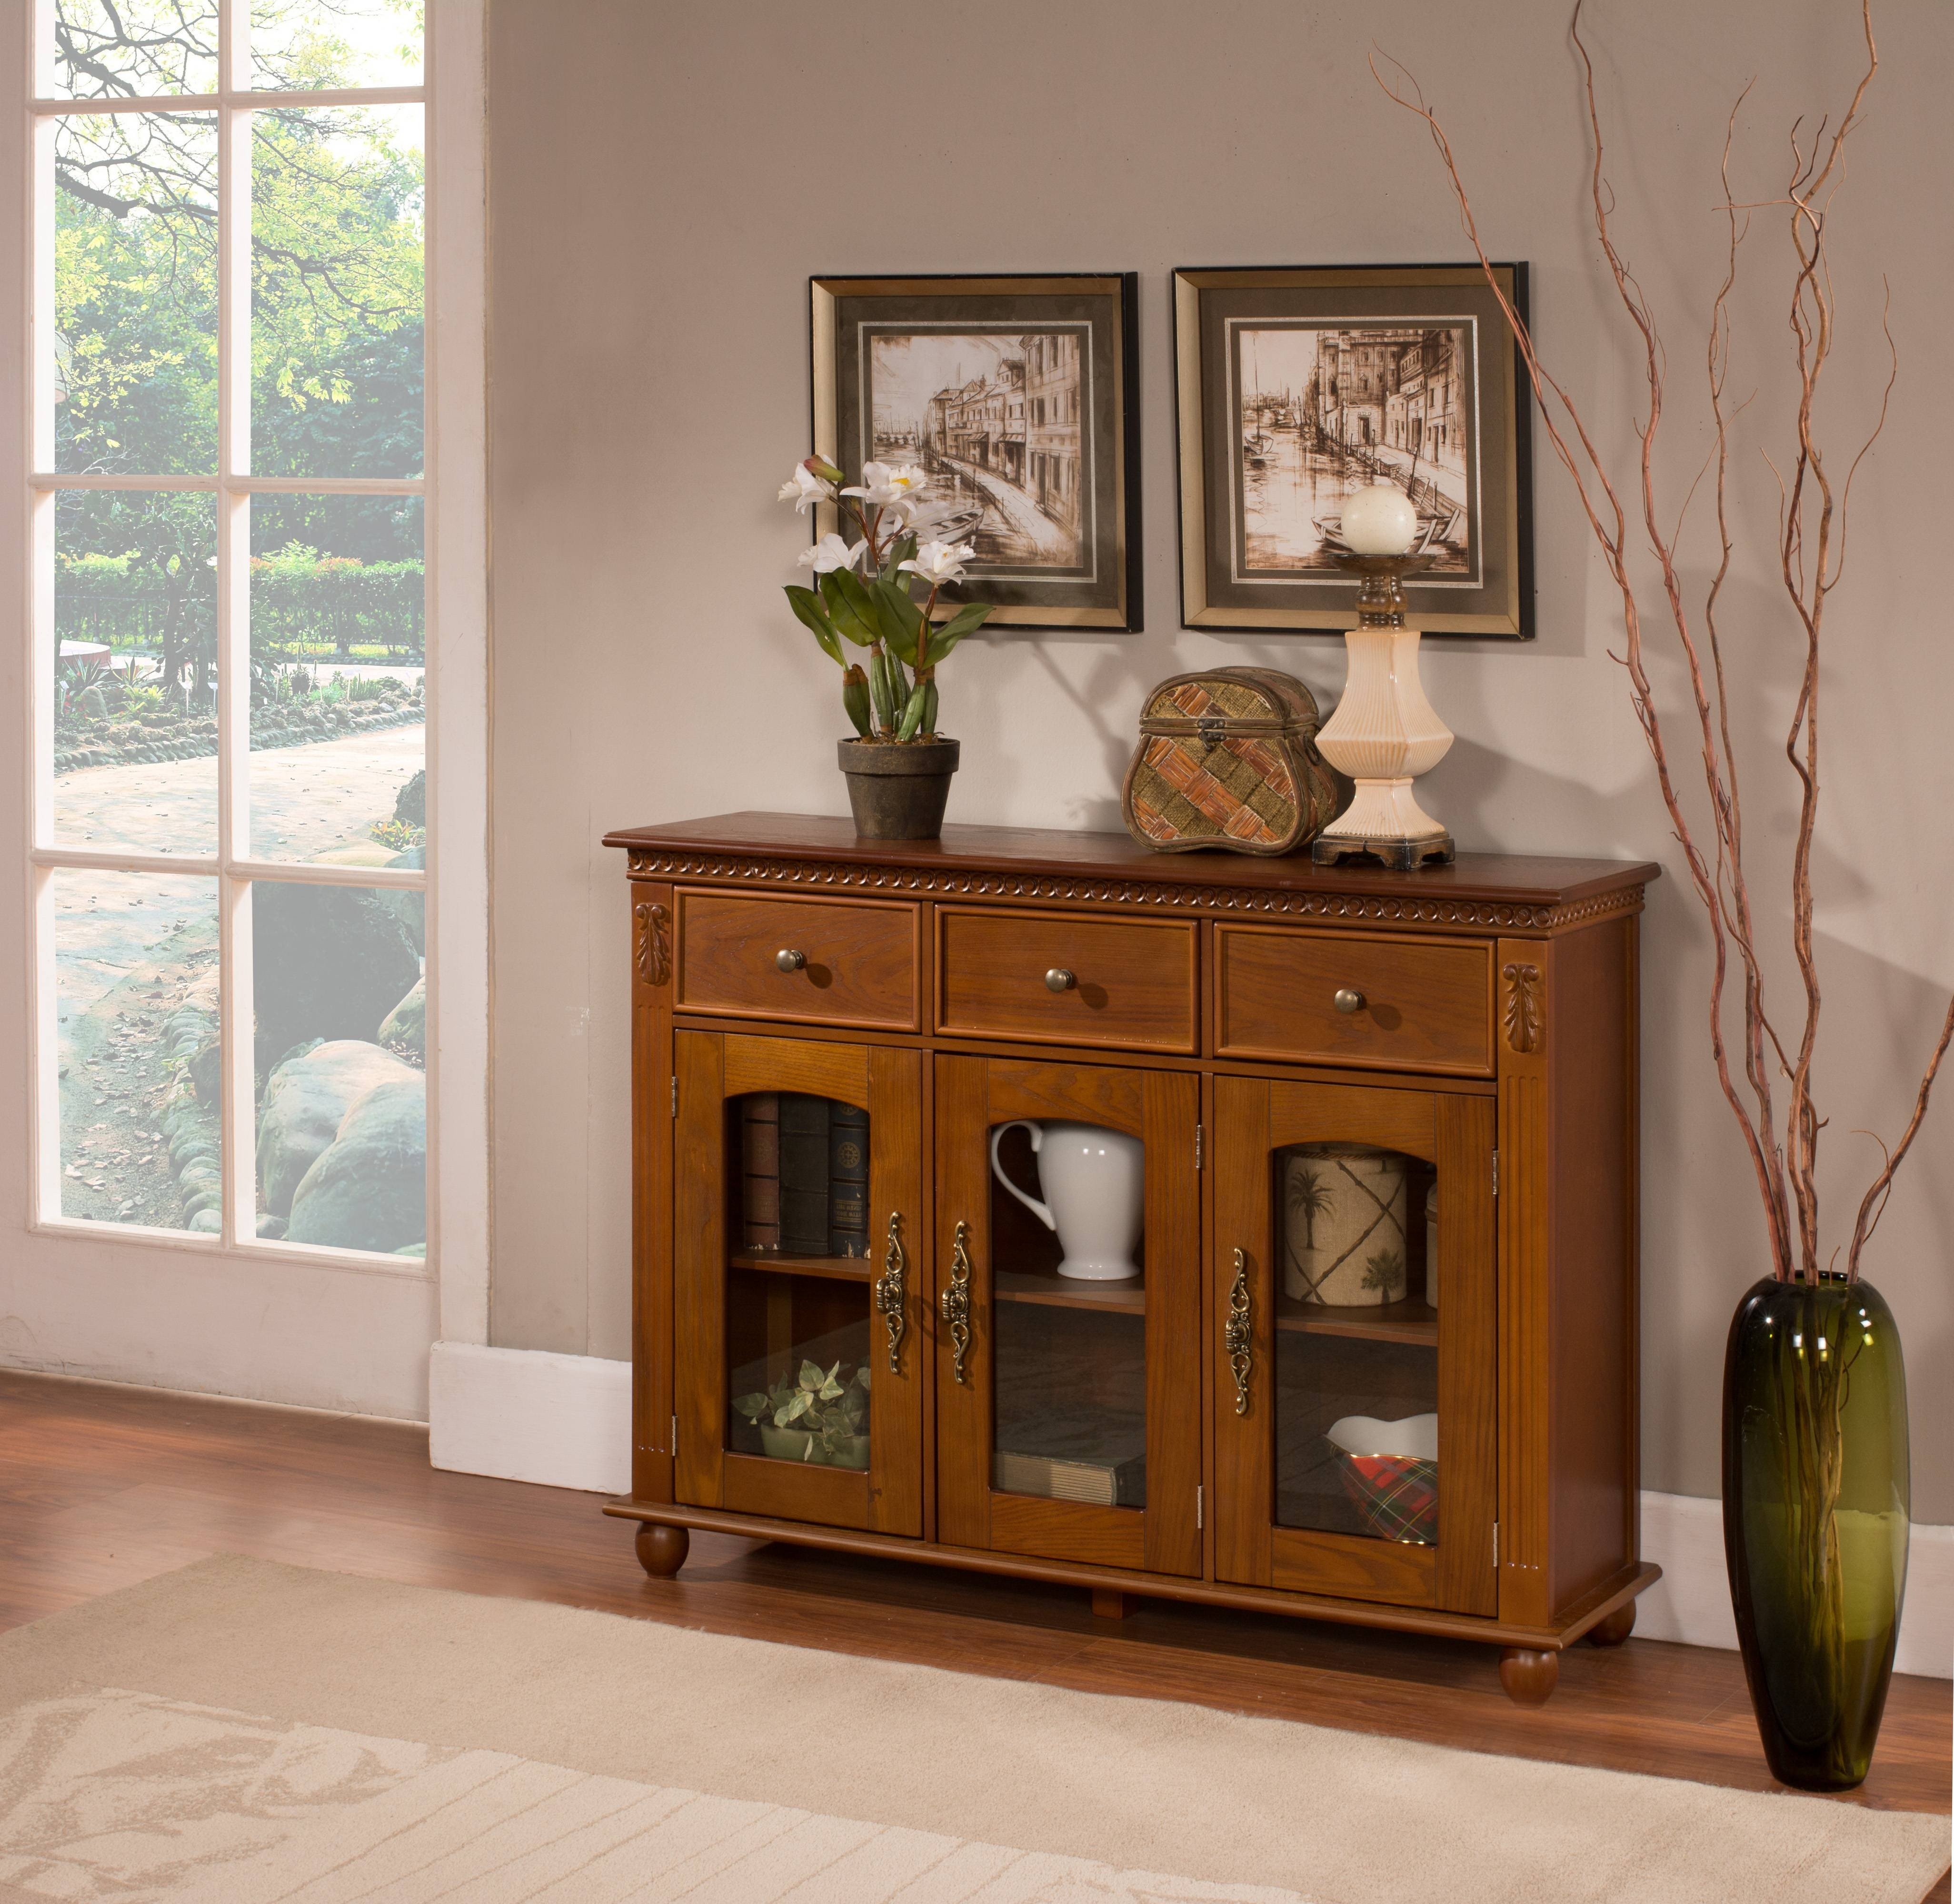 Tall Buffet Cabinet Black Sideboard Cabinet Sideboard With Hutch With Regard To Most Current Sideboards With Hutch (#14 of 15)